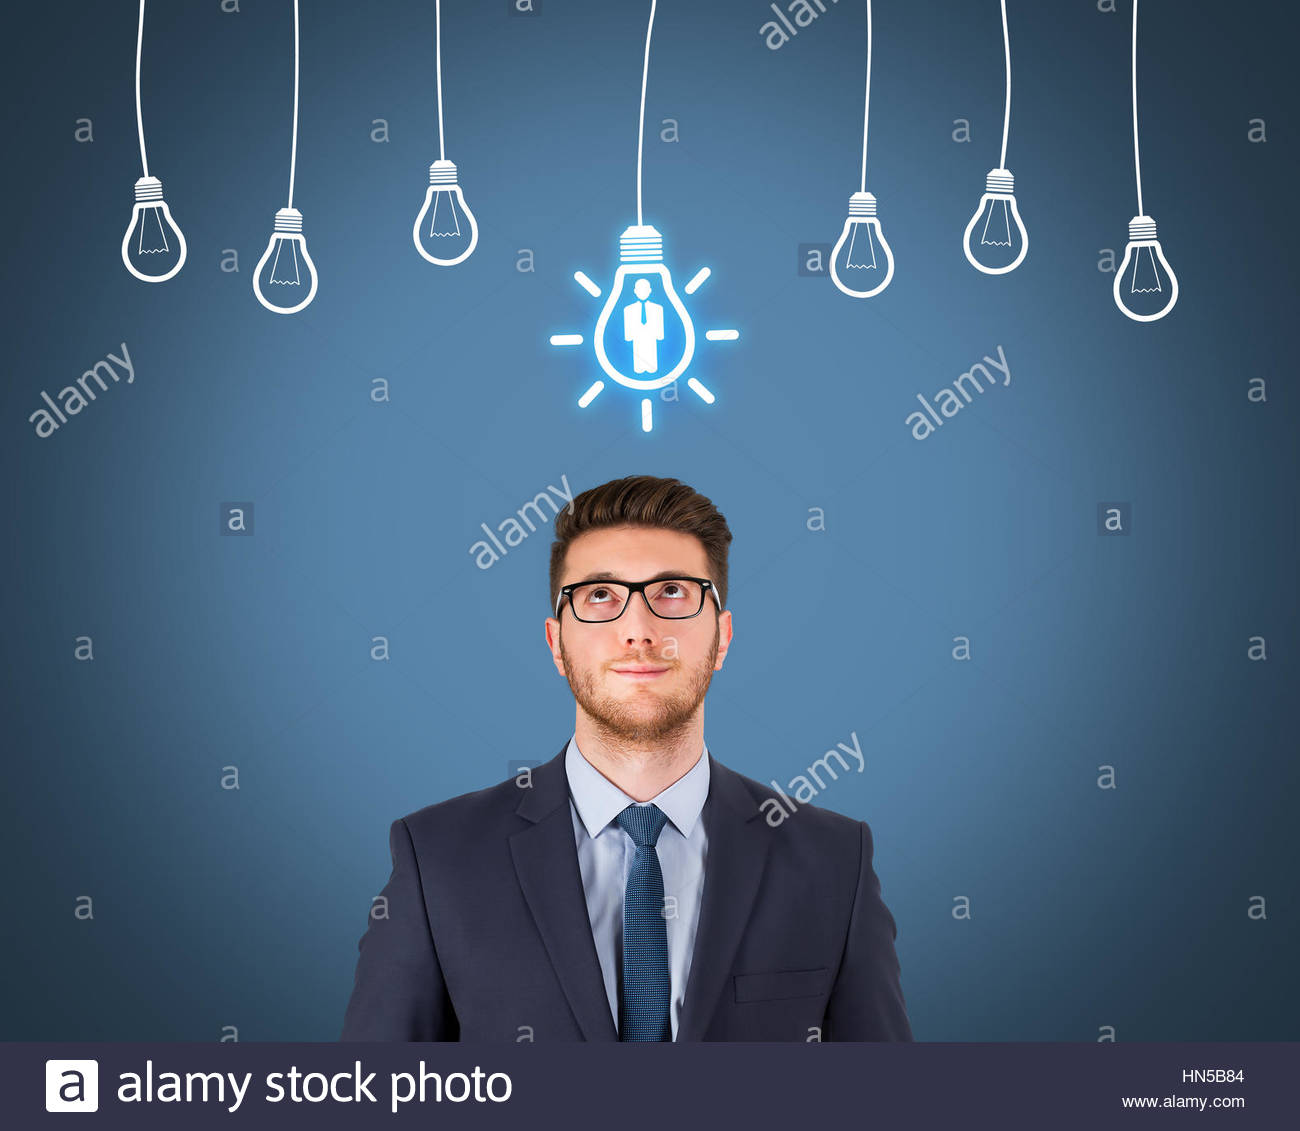 Recruitment and Idea With Person - Stock Image